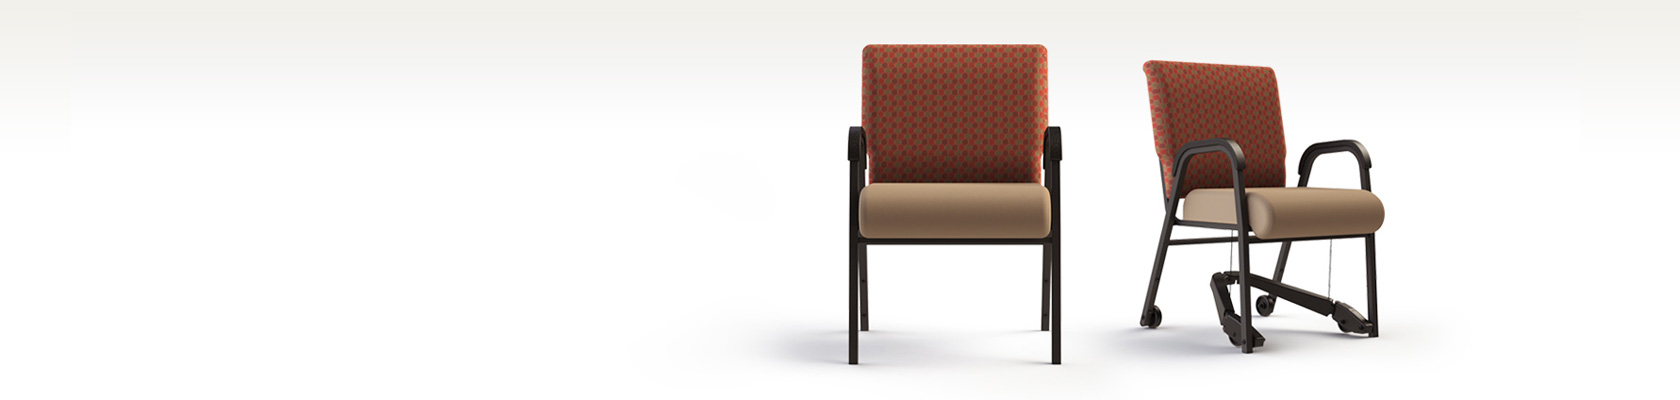 Titan-Chair